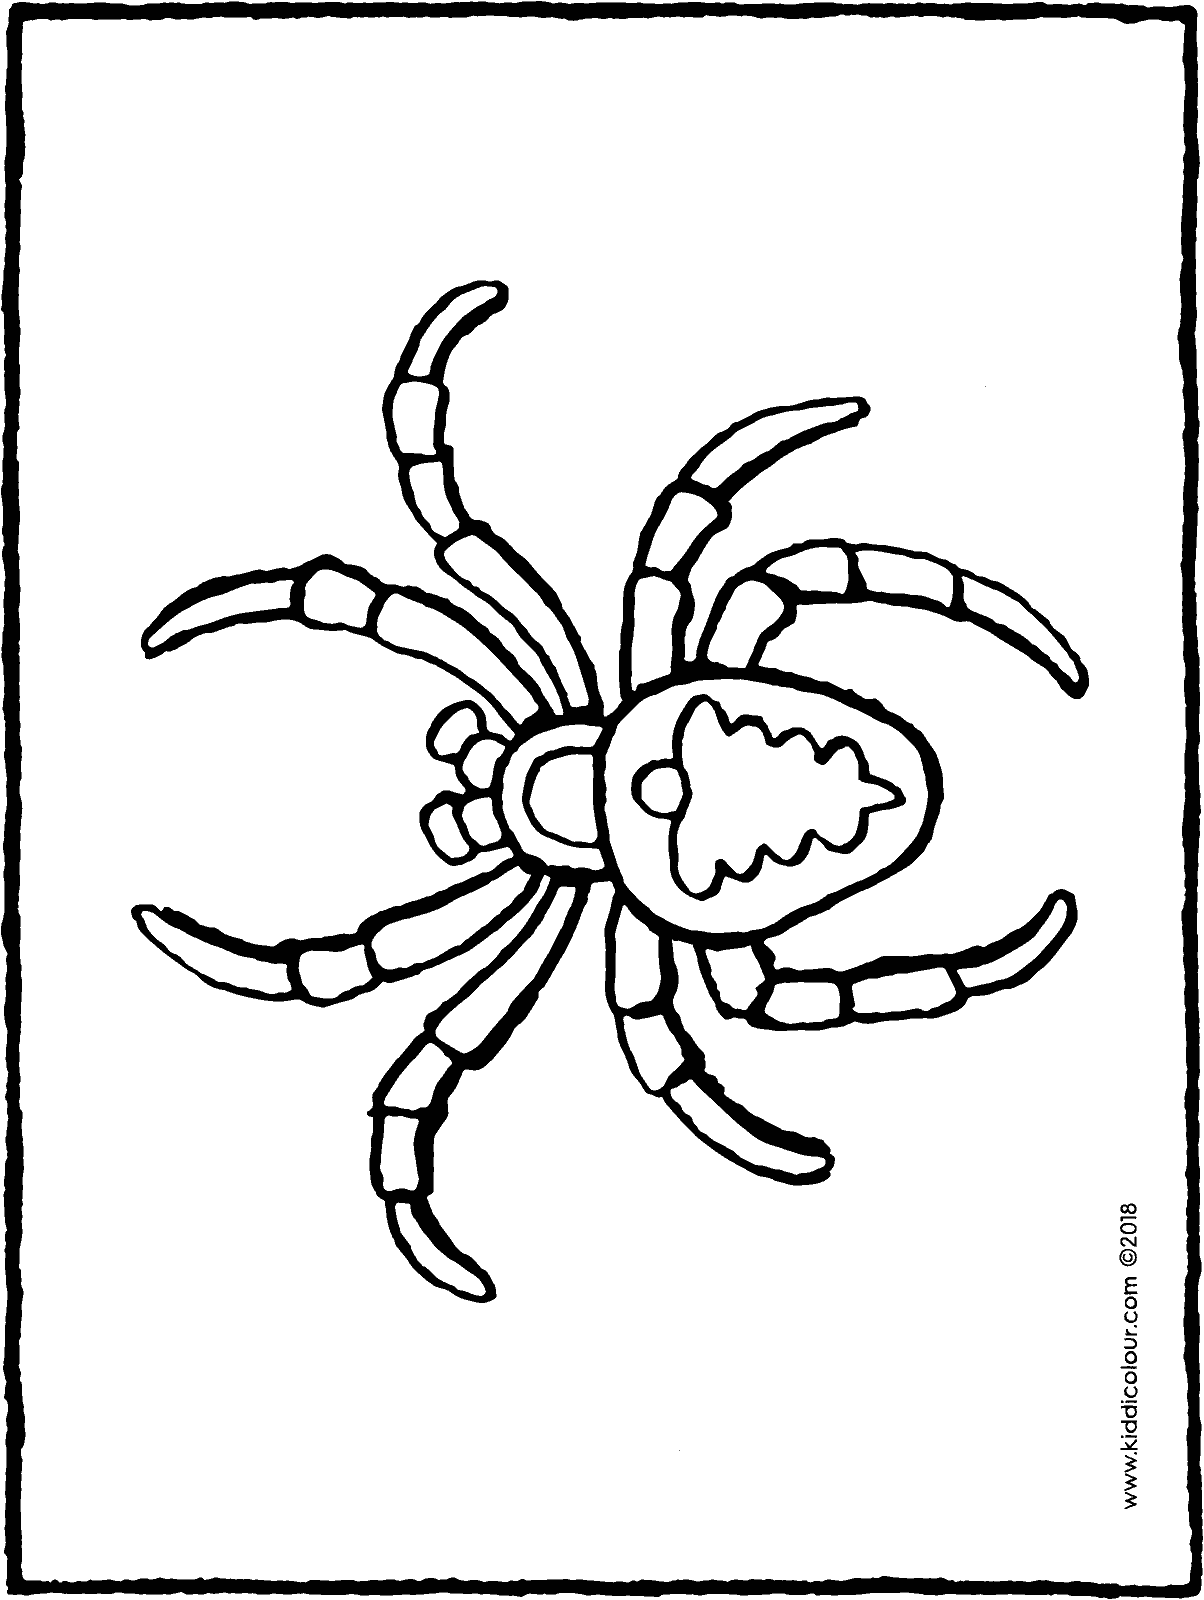 spider colouring page drawing picture 01H